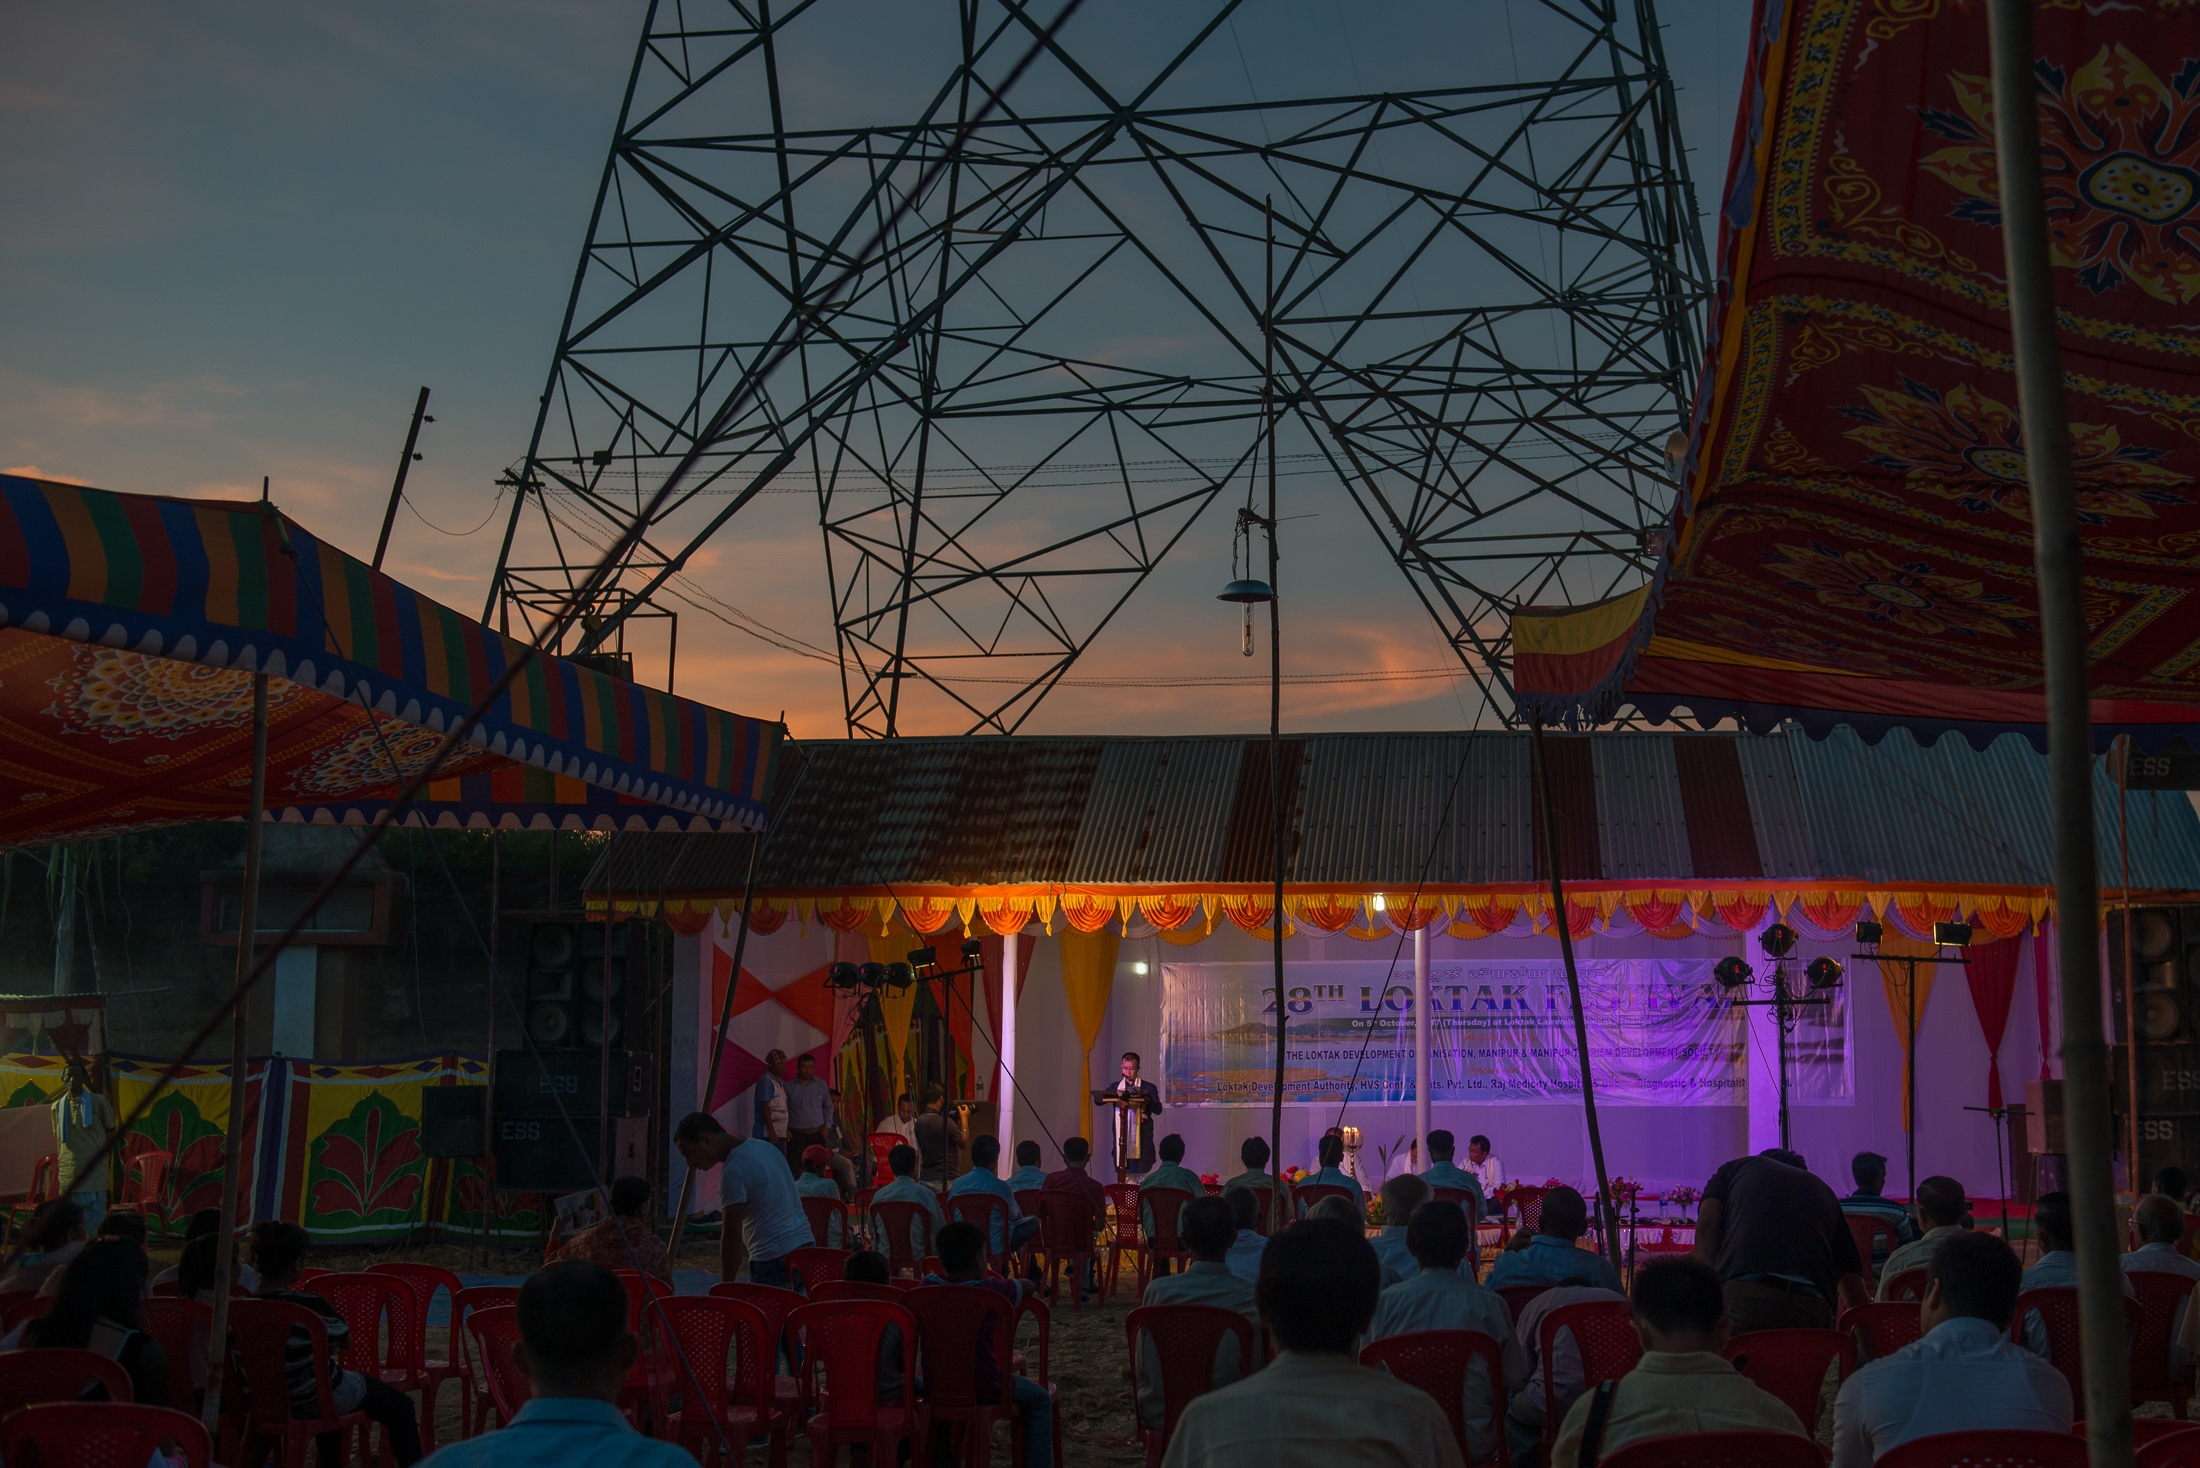 A government official delivers a speech at the 2017 Loktak Day celebration, emphasizing the conservation of the Loktak Lake. The 105 MW, Loktak Hydro Power Project, commissioned by the government in 1983 for power generation and irrigation has not only been underperforming but has also resulted in an ecological disaster in the Loktak Lake and impacted the livelihoods of over 30,000 fisherfolks.